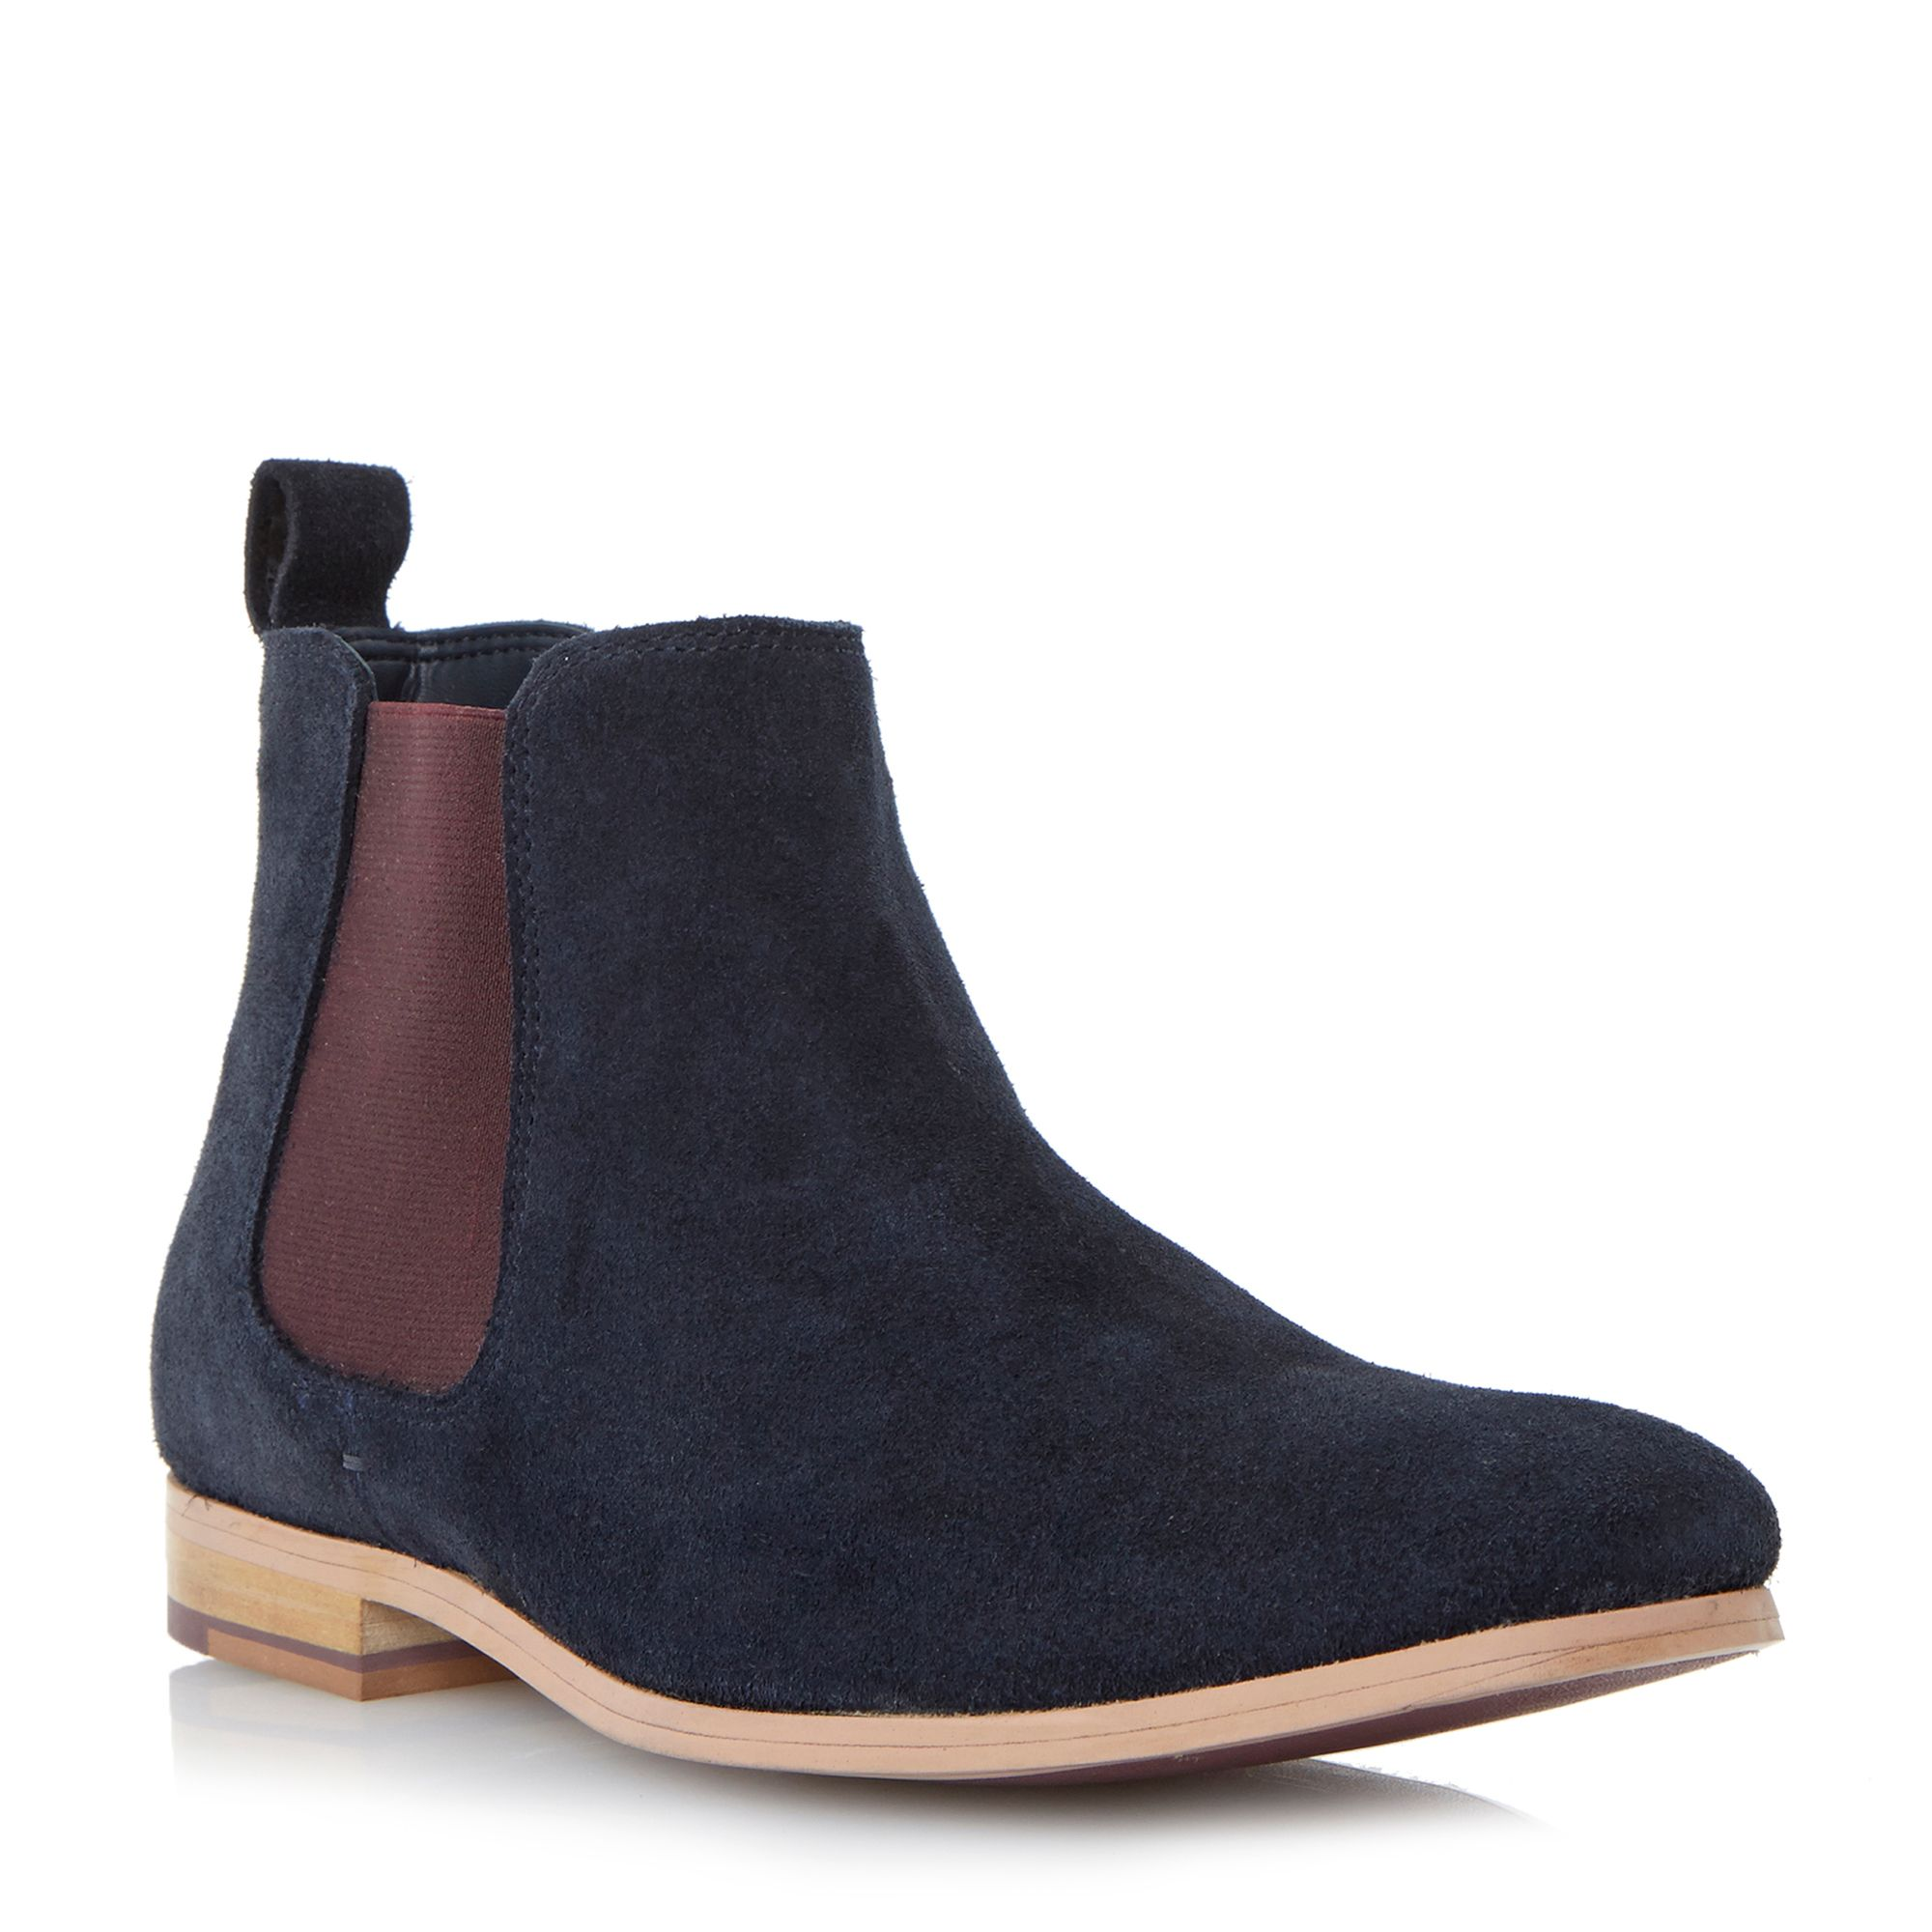 Linea Accessories Coaching Slip On Casual Chelsea Boots